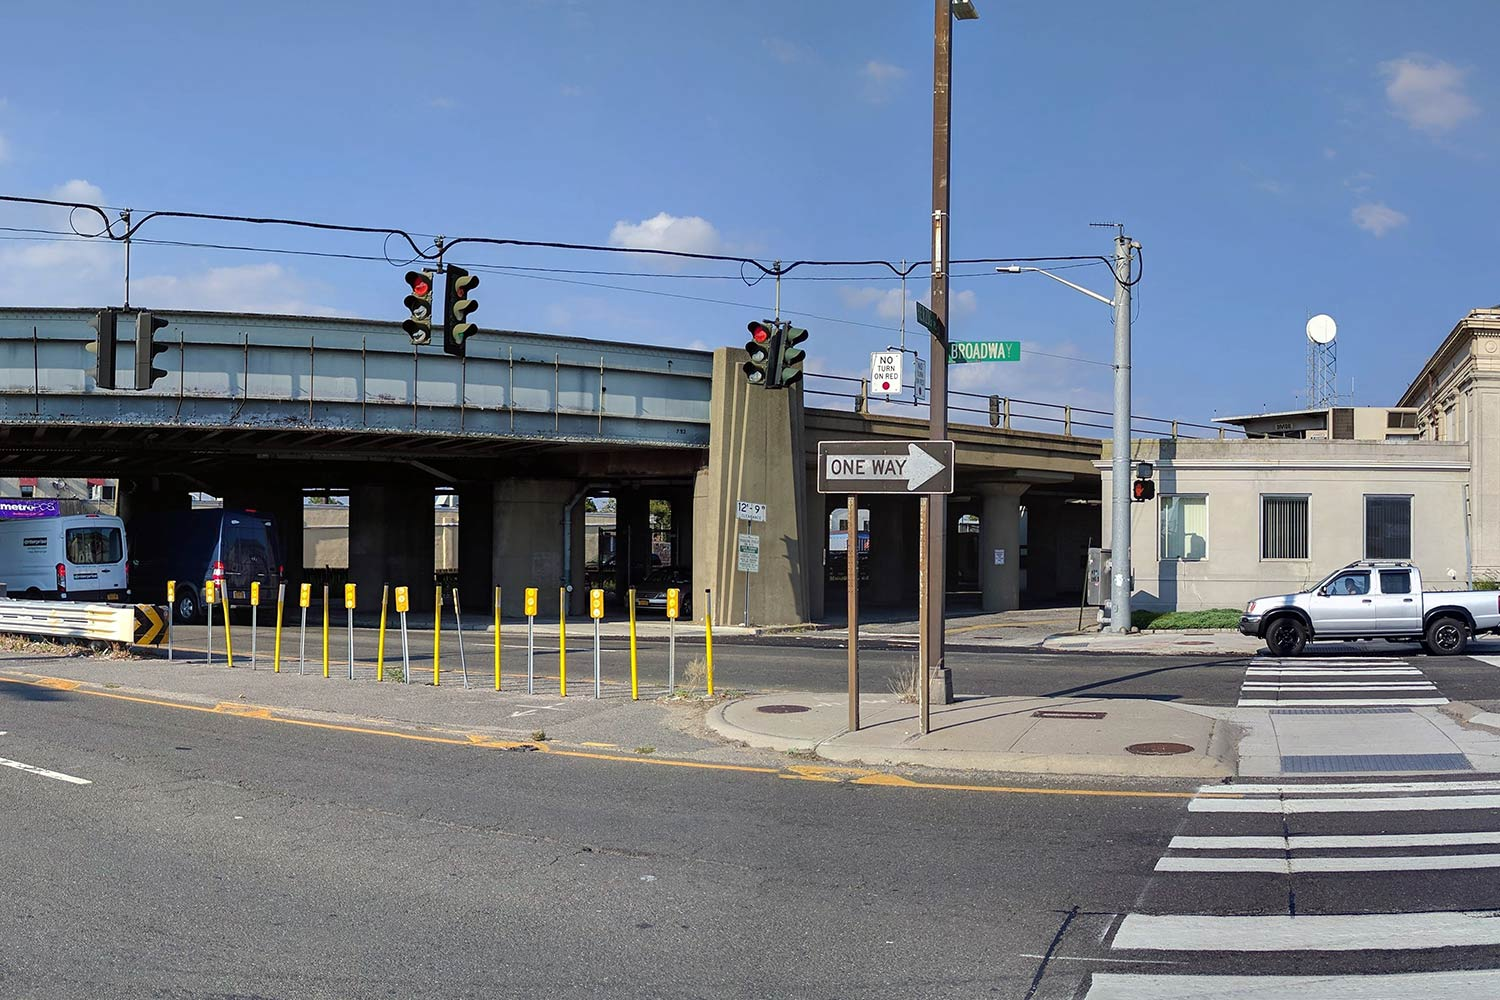 Downtown Revitalization Covers Photo : Downtown revitalization initiative burohappold engineering